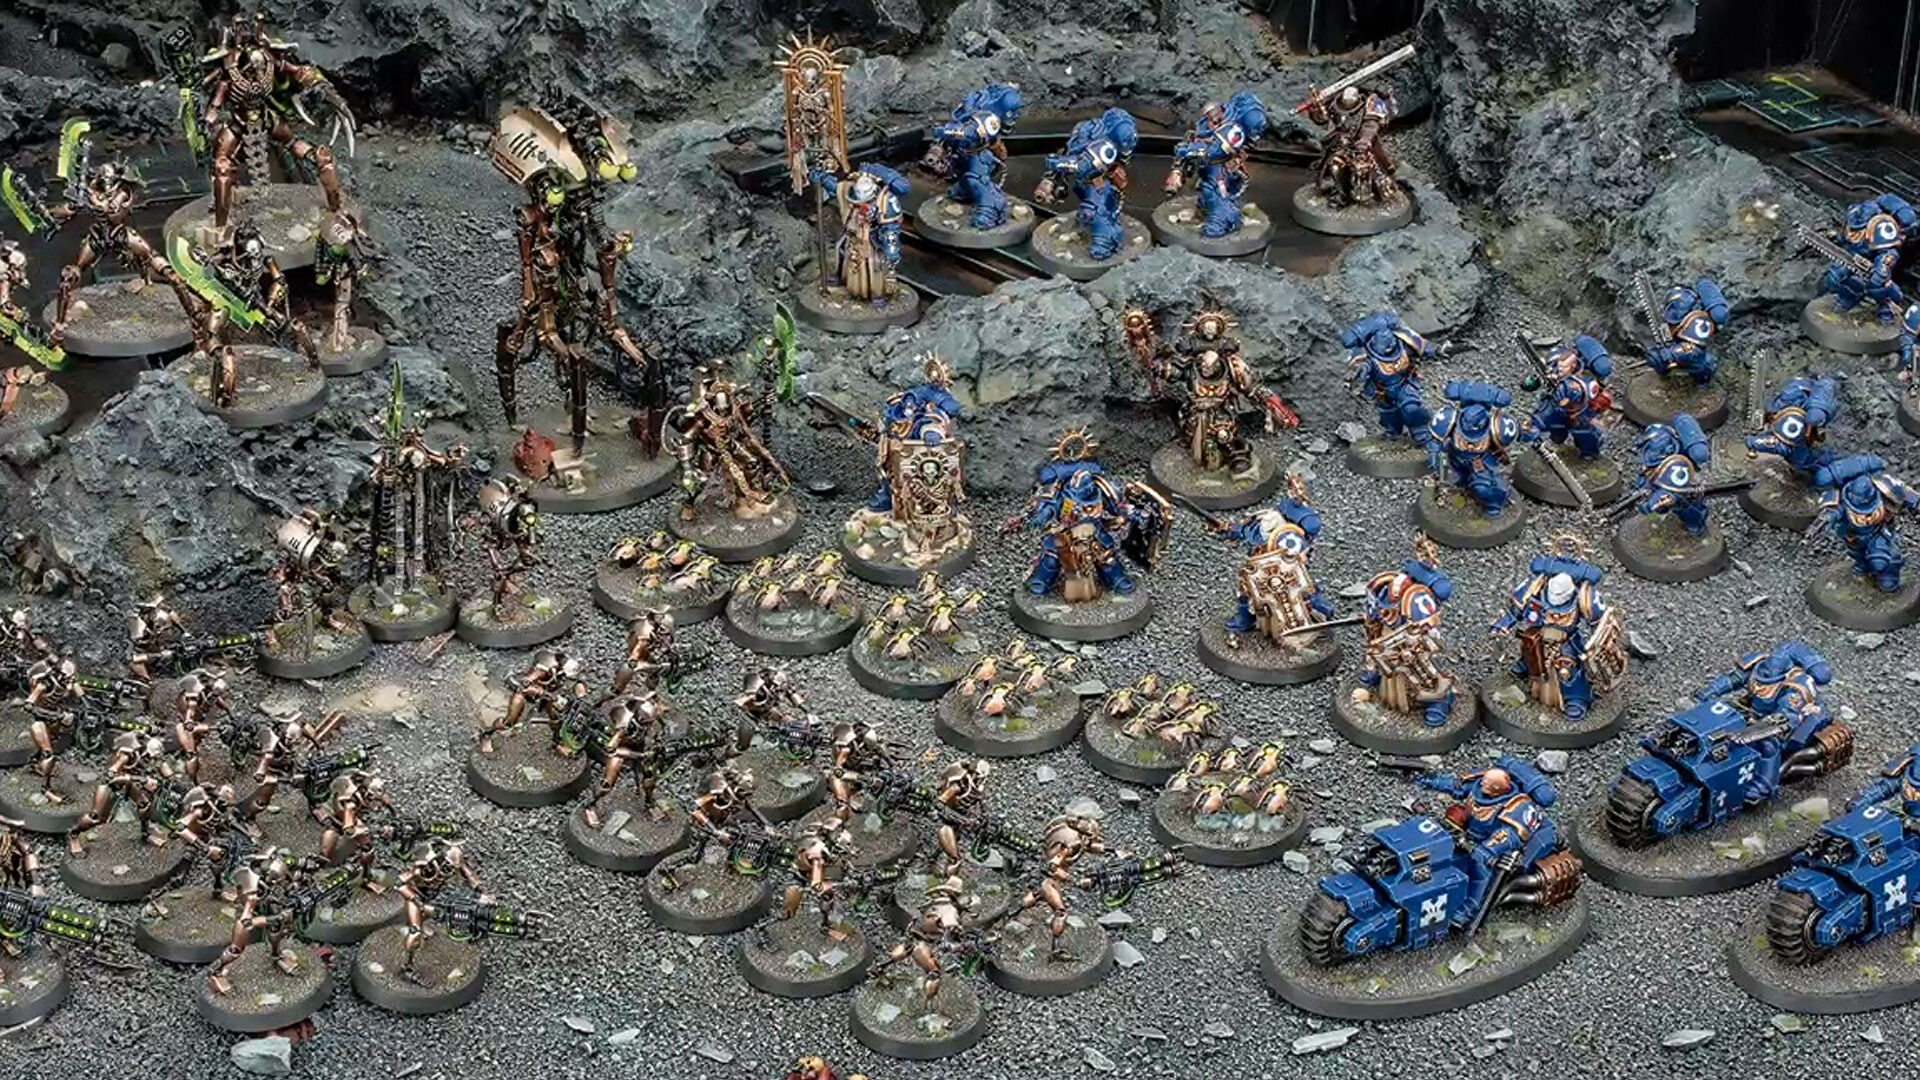 Warhammer 40 000 Indomitus Review First Ninth Edition Box Set Mostly Hits The Mark As An Entry Point For 40k First Timers Dicebreaker